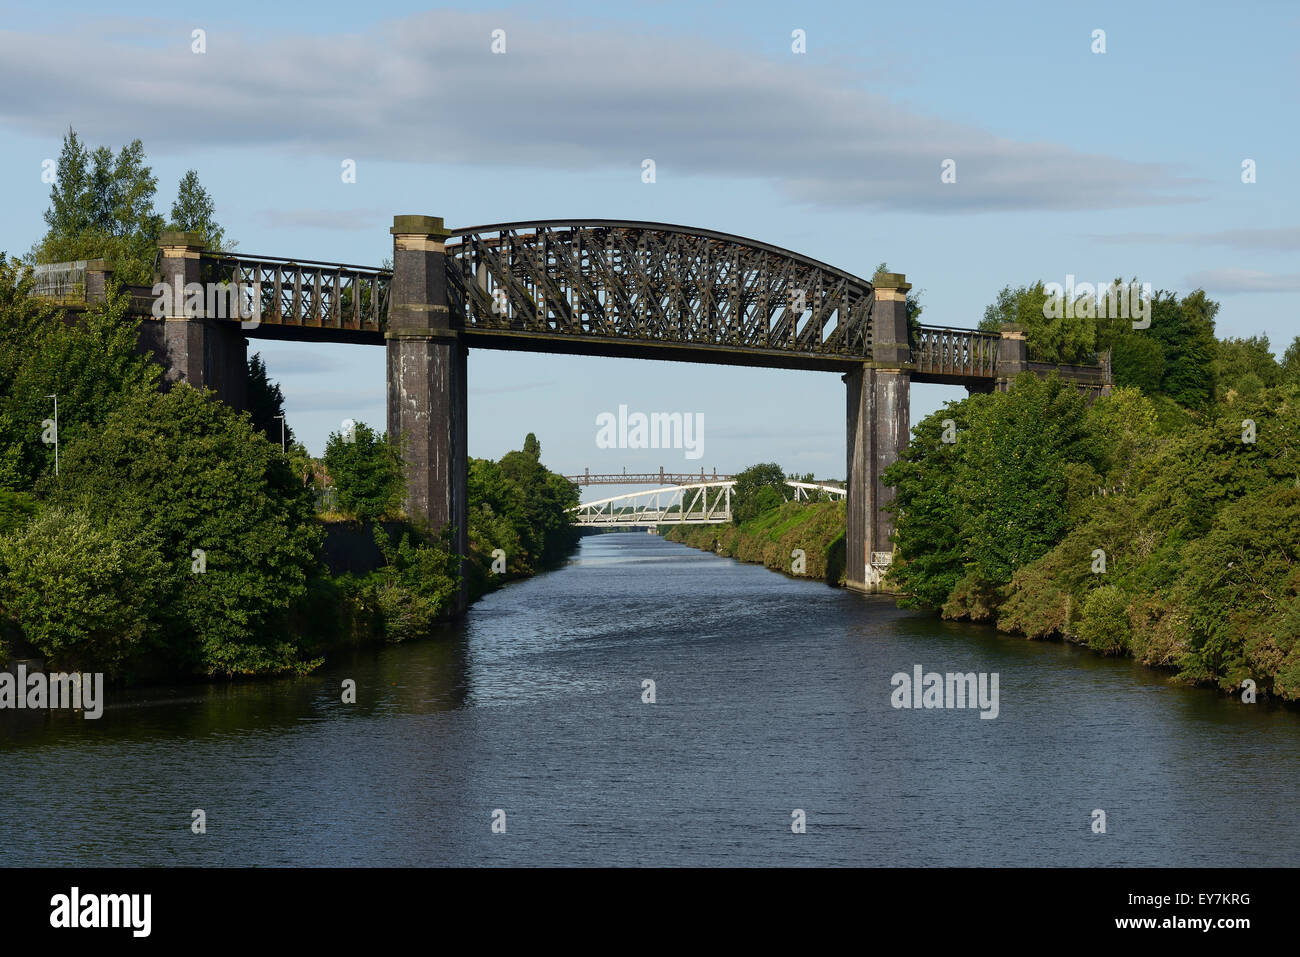 The disused Latchford Railway Viaduct crossing the Manchester Ship Canal in Latchford Warrington UK - Stock Image